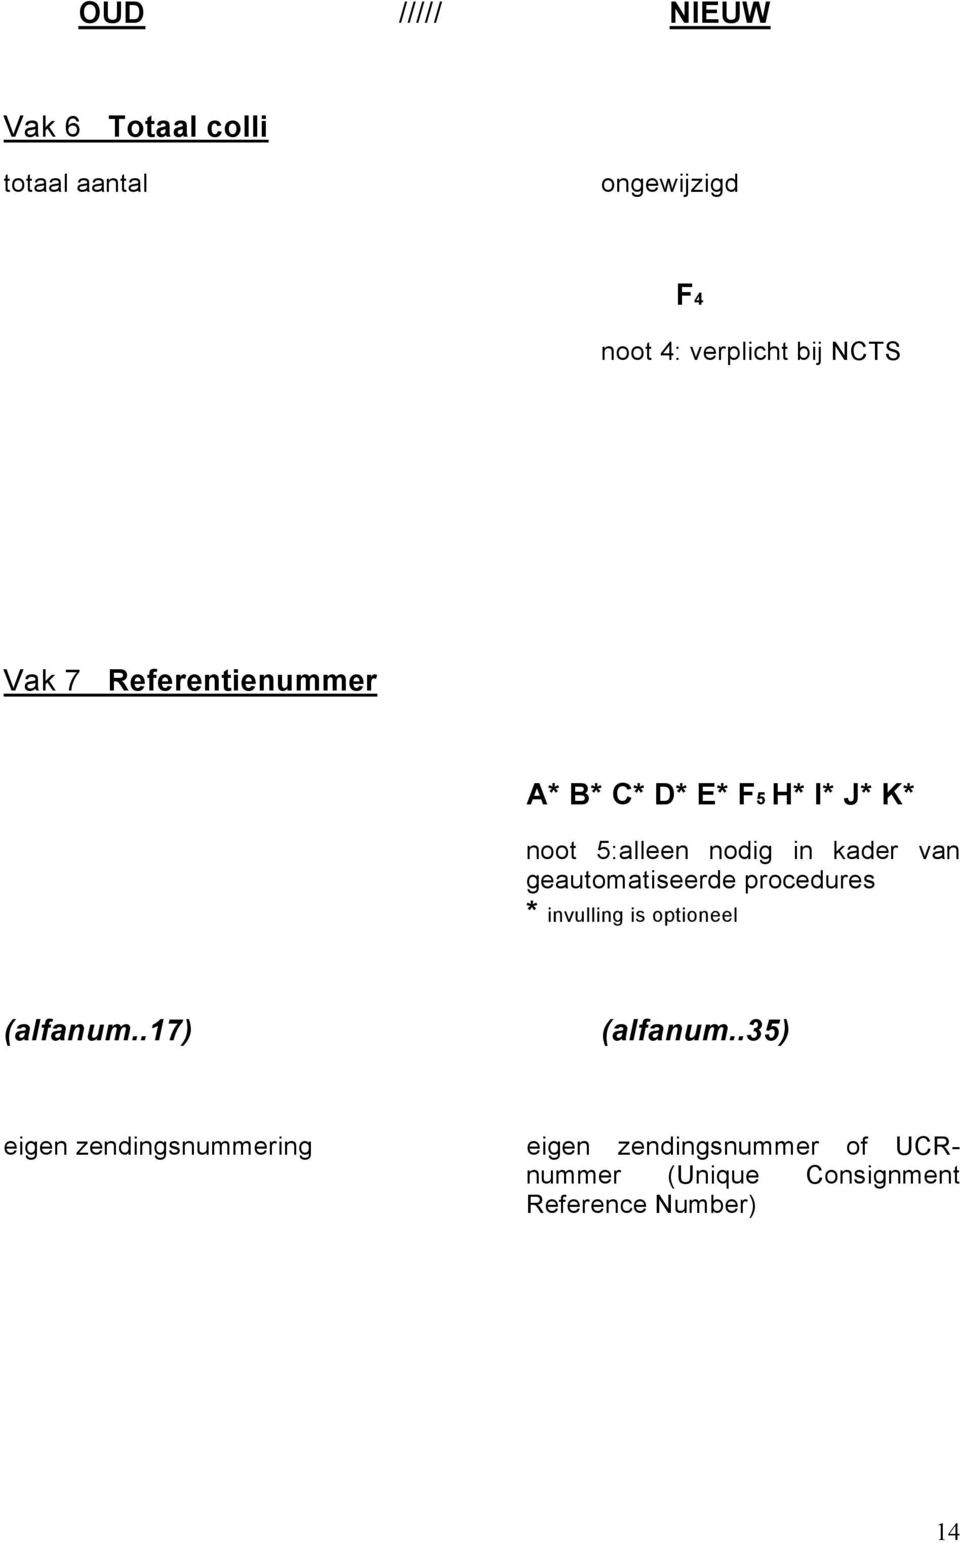 geautomatiseerde procedures * invulling is optioneel (alfanum..17) (alfanum.